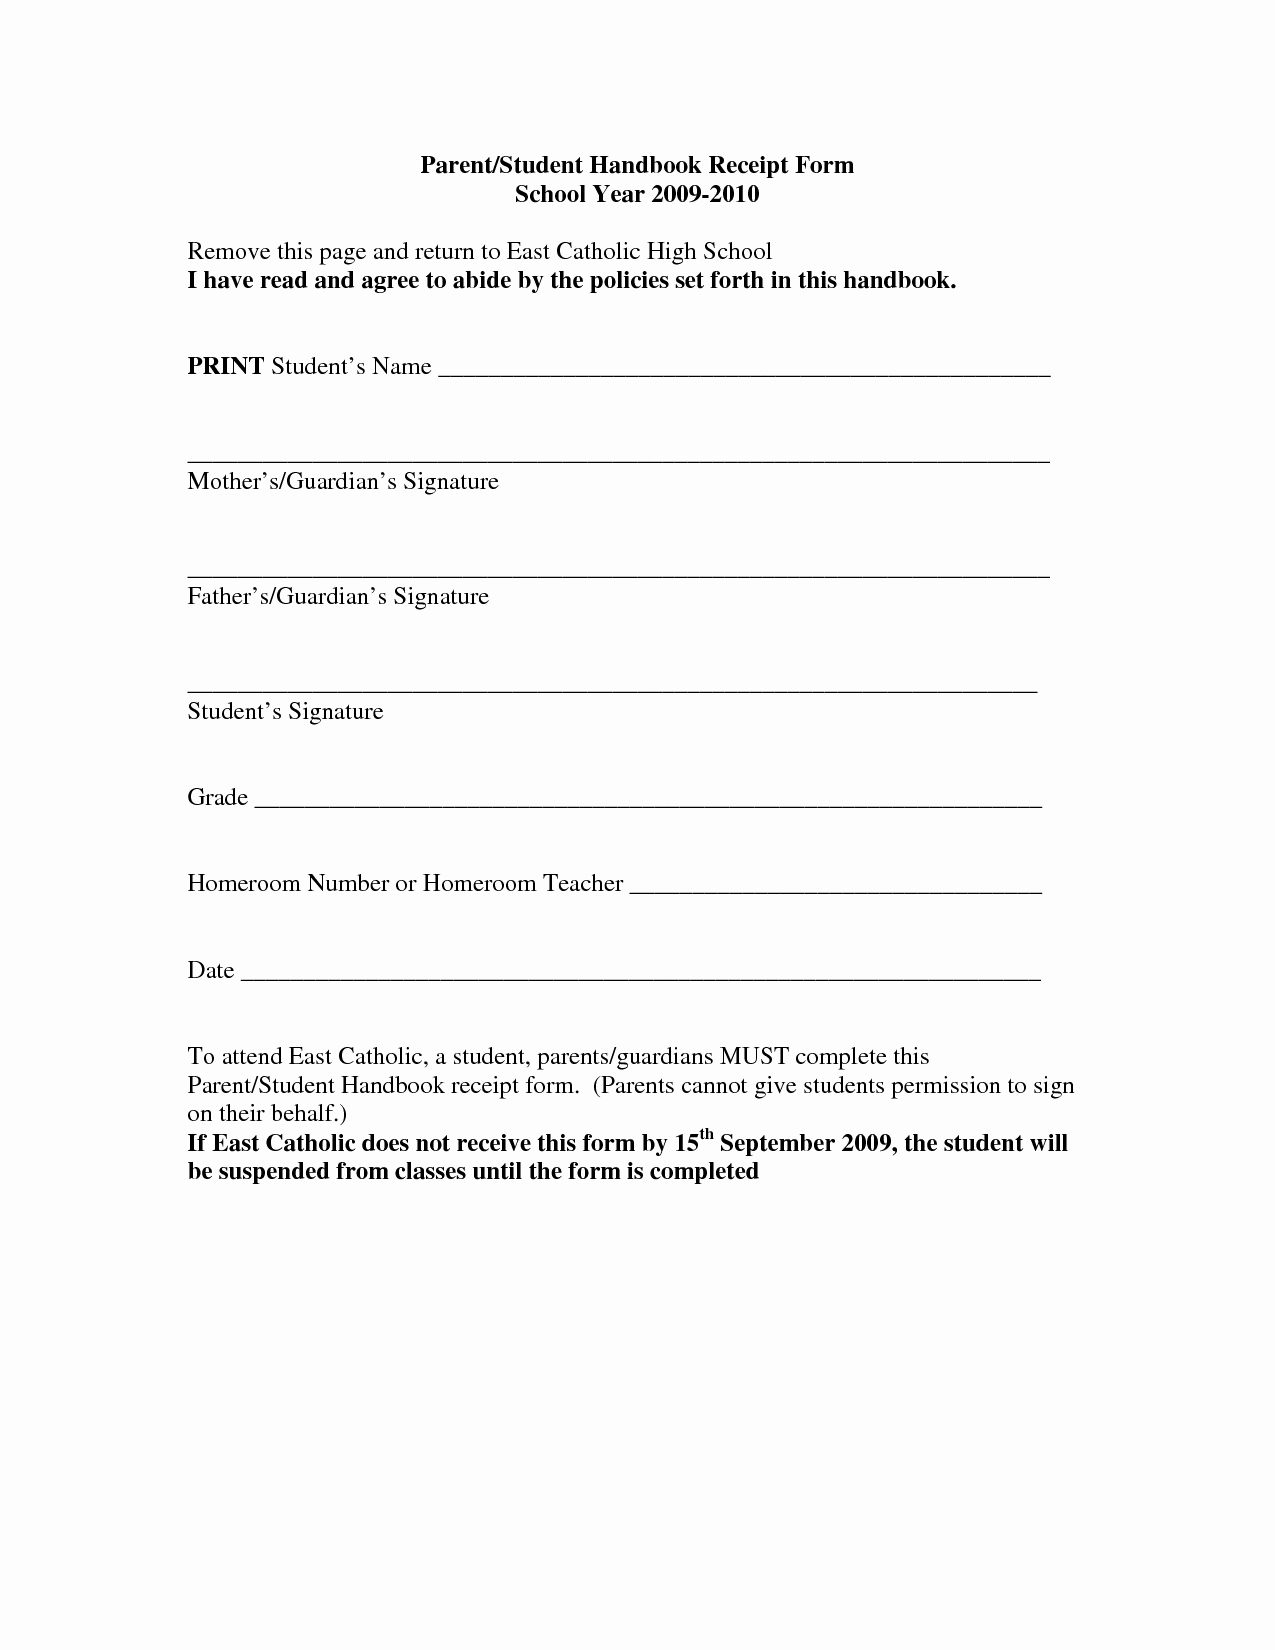 Ps form 3811 Template Luxury Best S Of Return Receipt form International